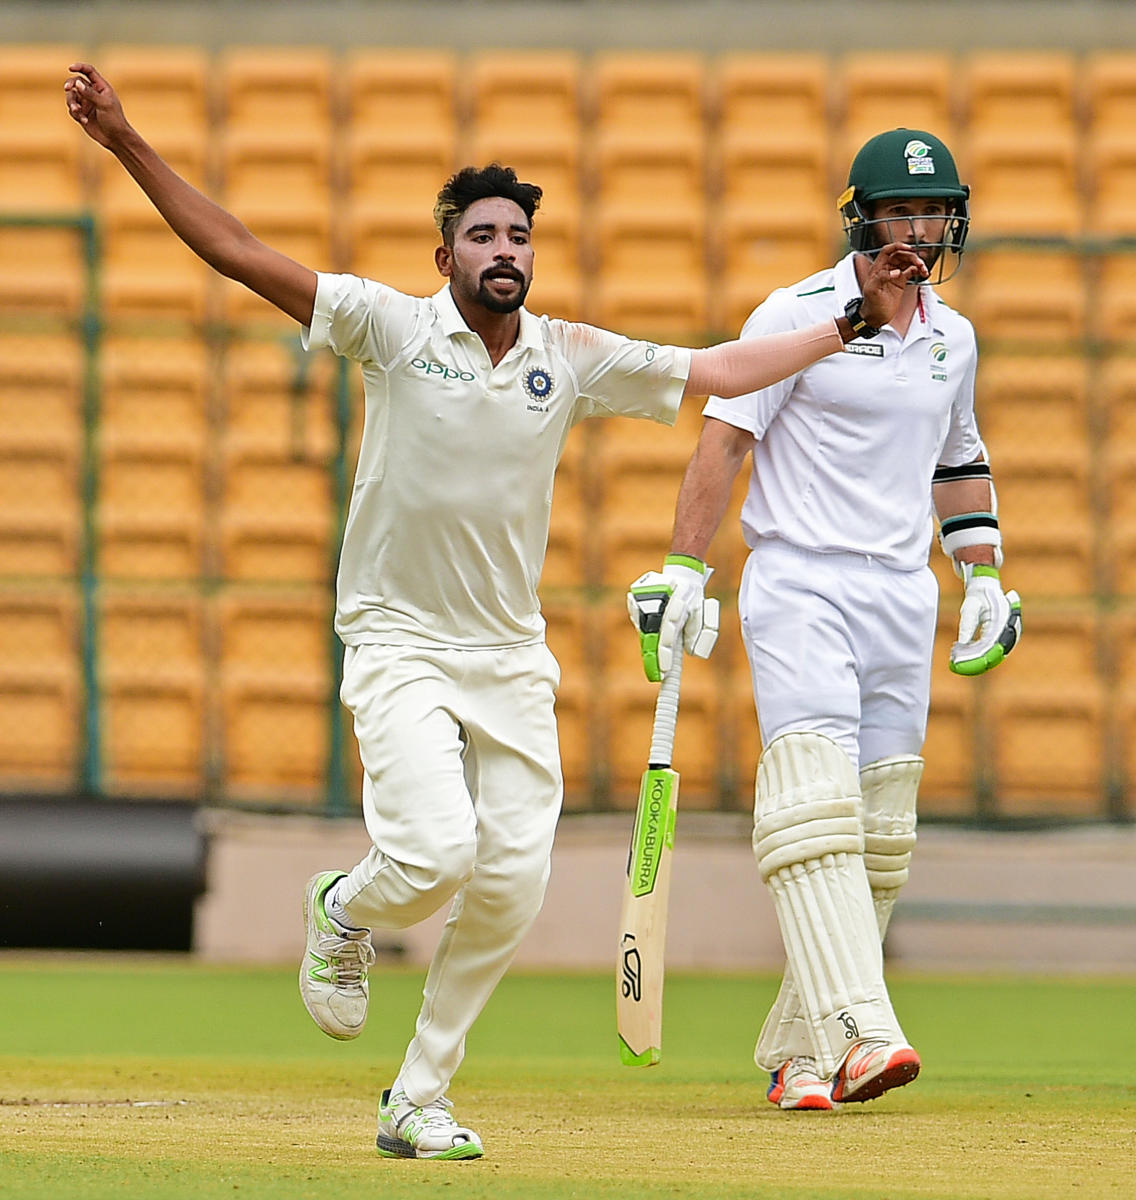 ON SONG Mohammad Siraj celebrates after sending back a South African batsman on the third day of their four-day game in Bengaluru on Monday. DH photo/ Ranju P